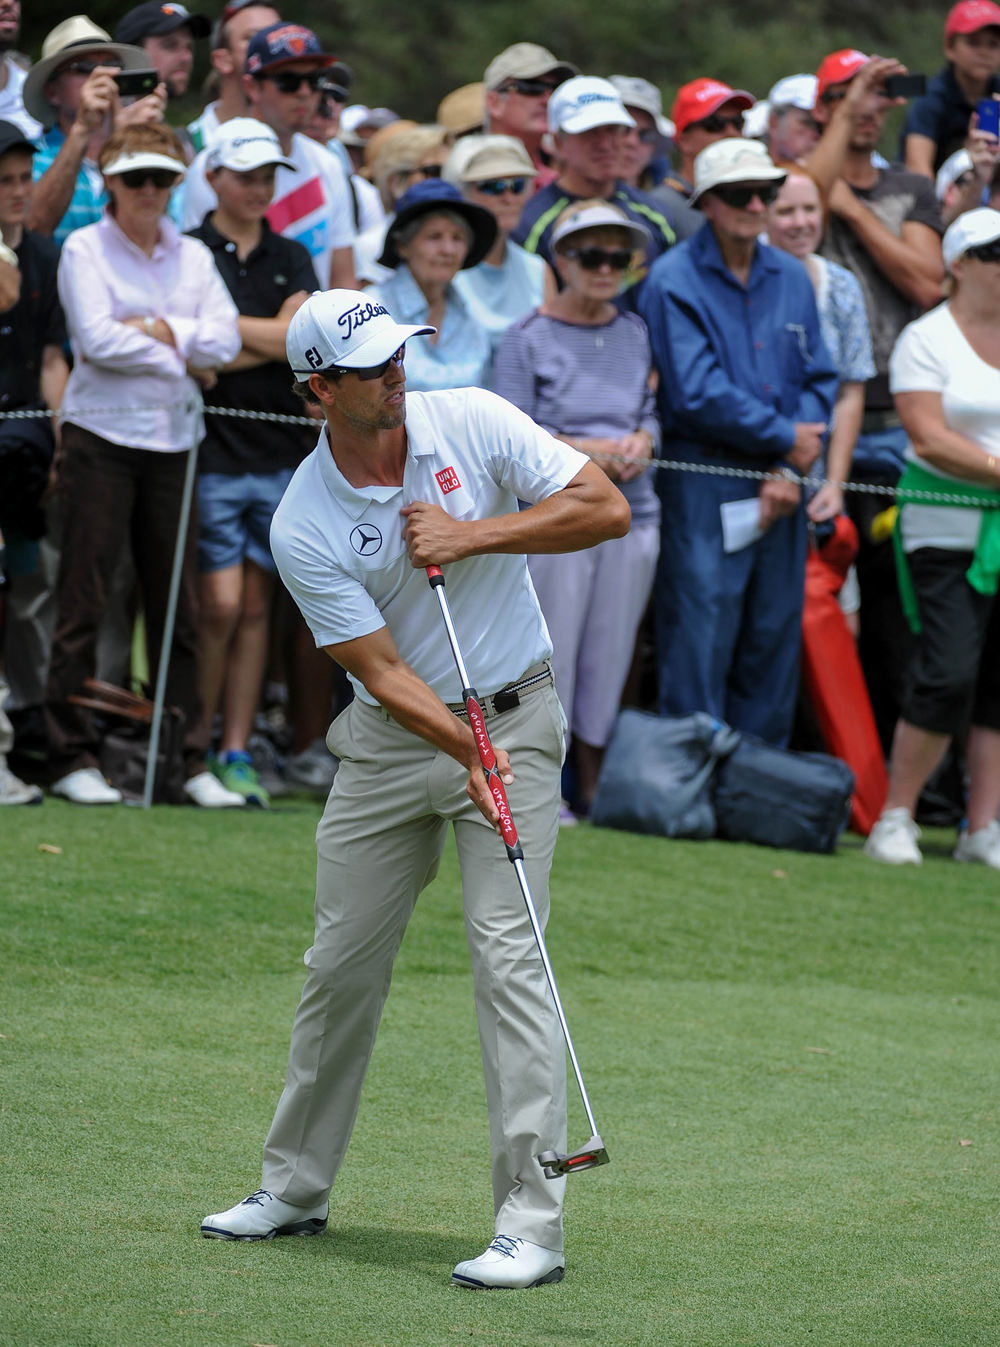 Adam Scott didn't have a great day with the putter.  Picture via  Oneasia.asia